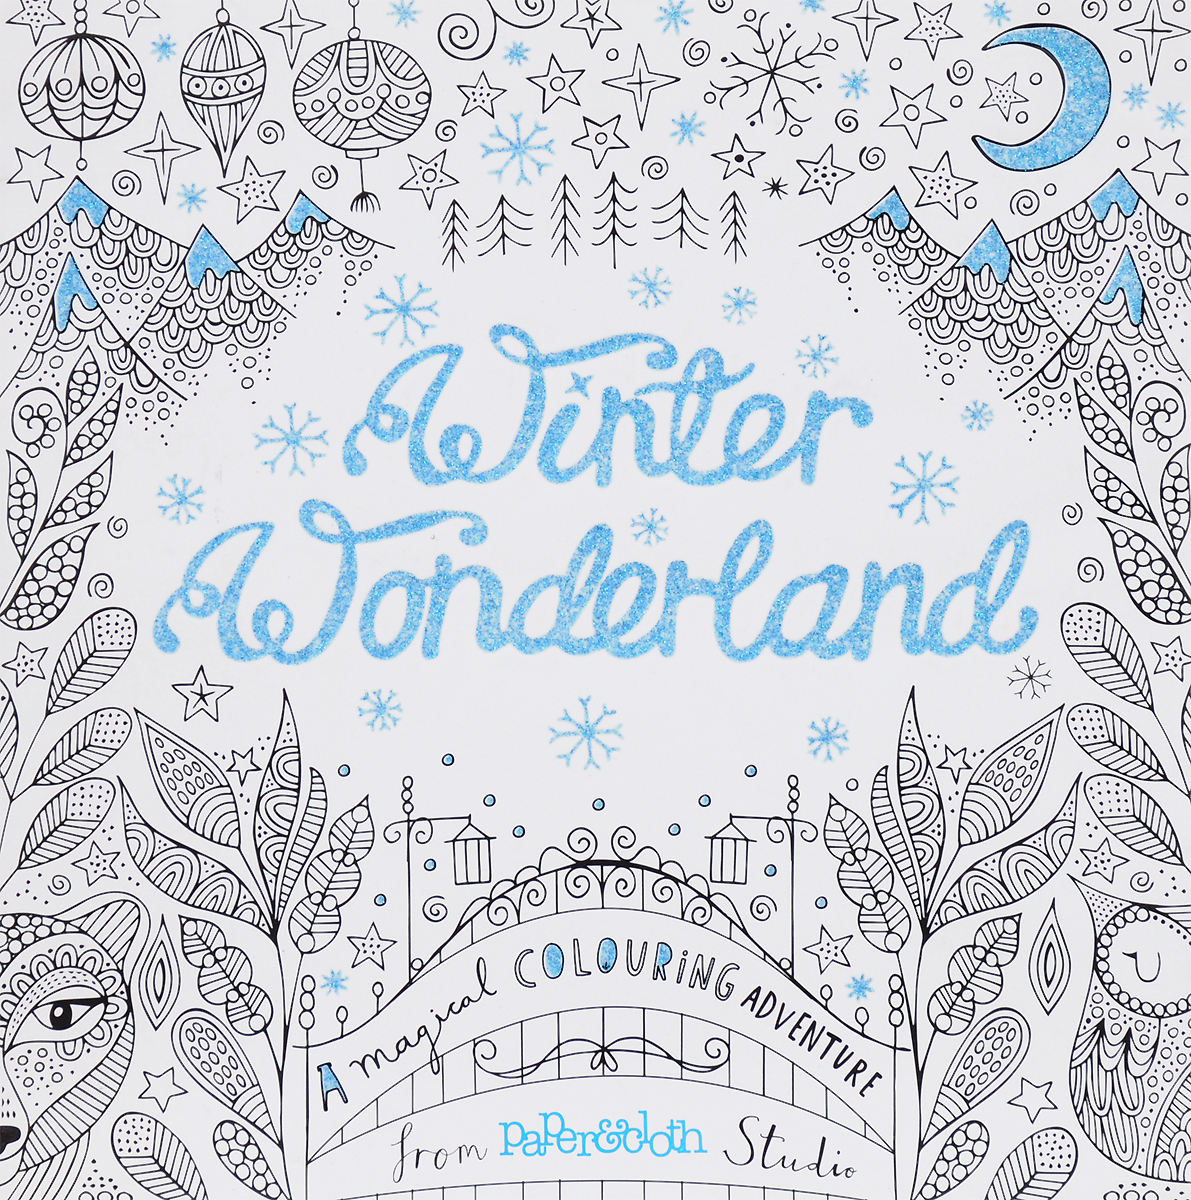 Winter Wonderland: A Magical Colouring Adventure texet tm d226 dual sim red black